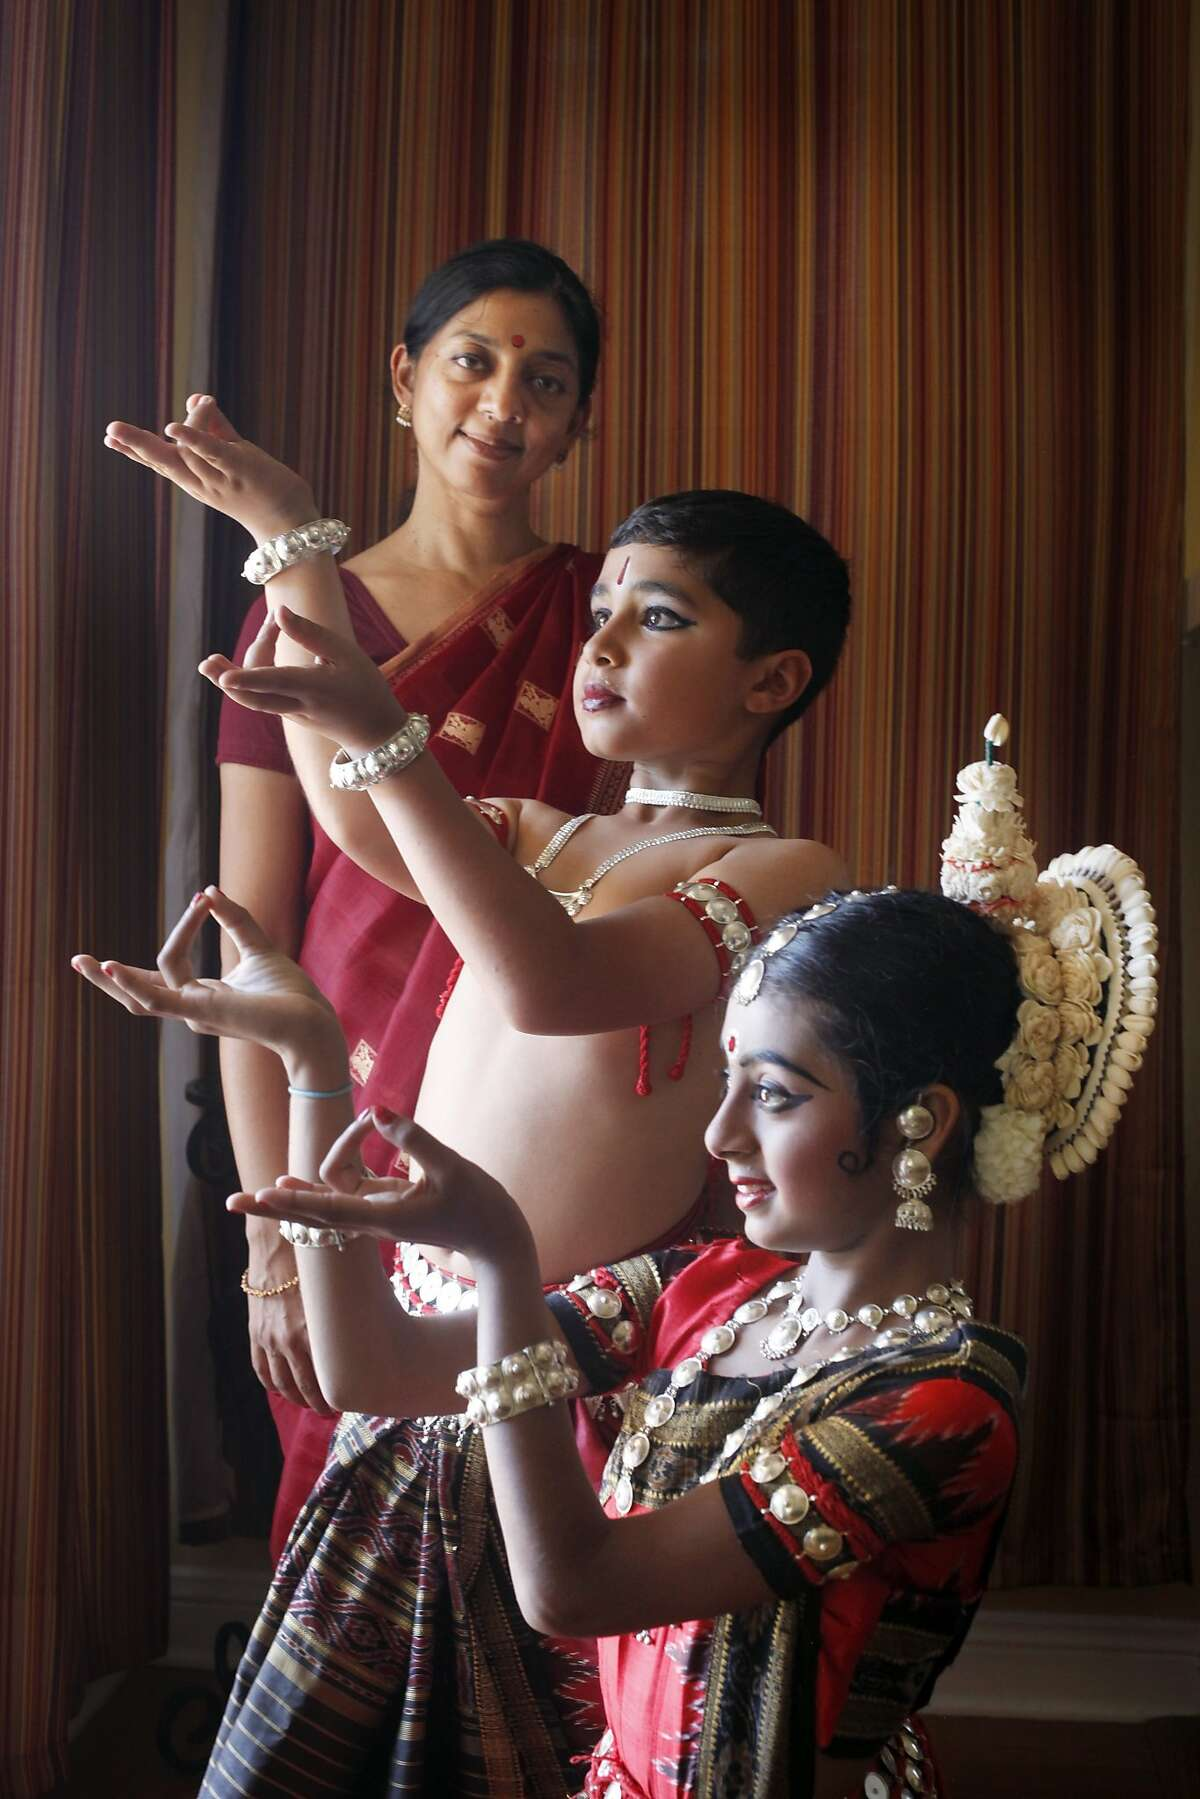 Teacher Niharika Mohanty, left poses with dancers Akhil Srinivasan Joondeph and Maya Lochana Devalcheruvu, Wednesday May 14, 2014, in San Carlos, Calif. They are Indian dancers who performed at the first Ethnic Dance Festival.